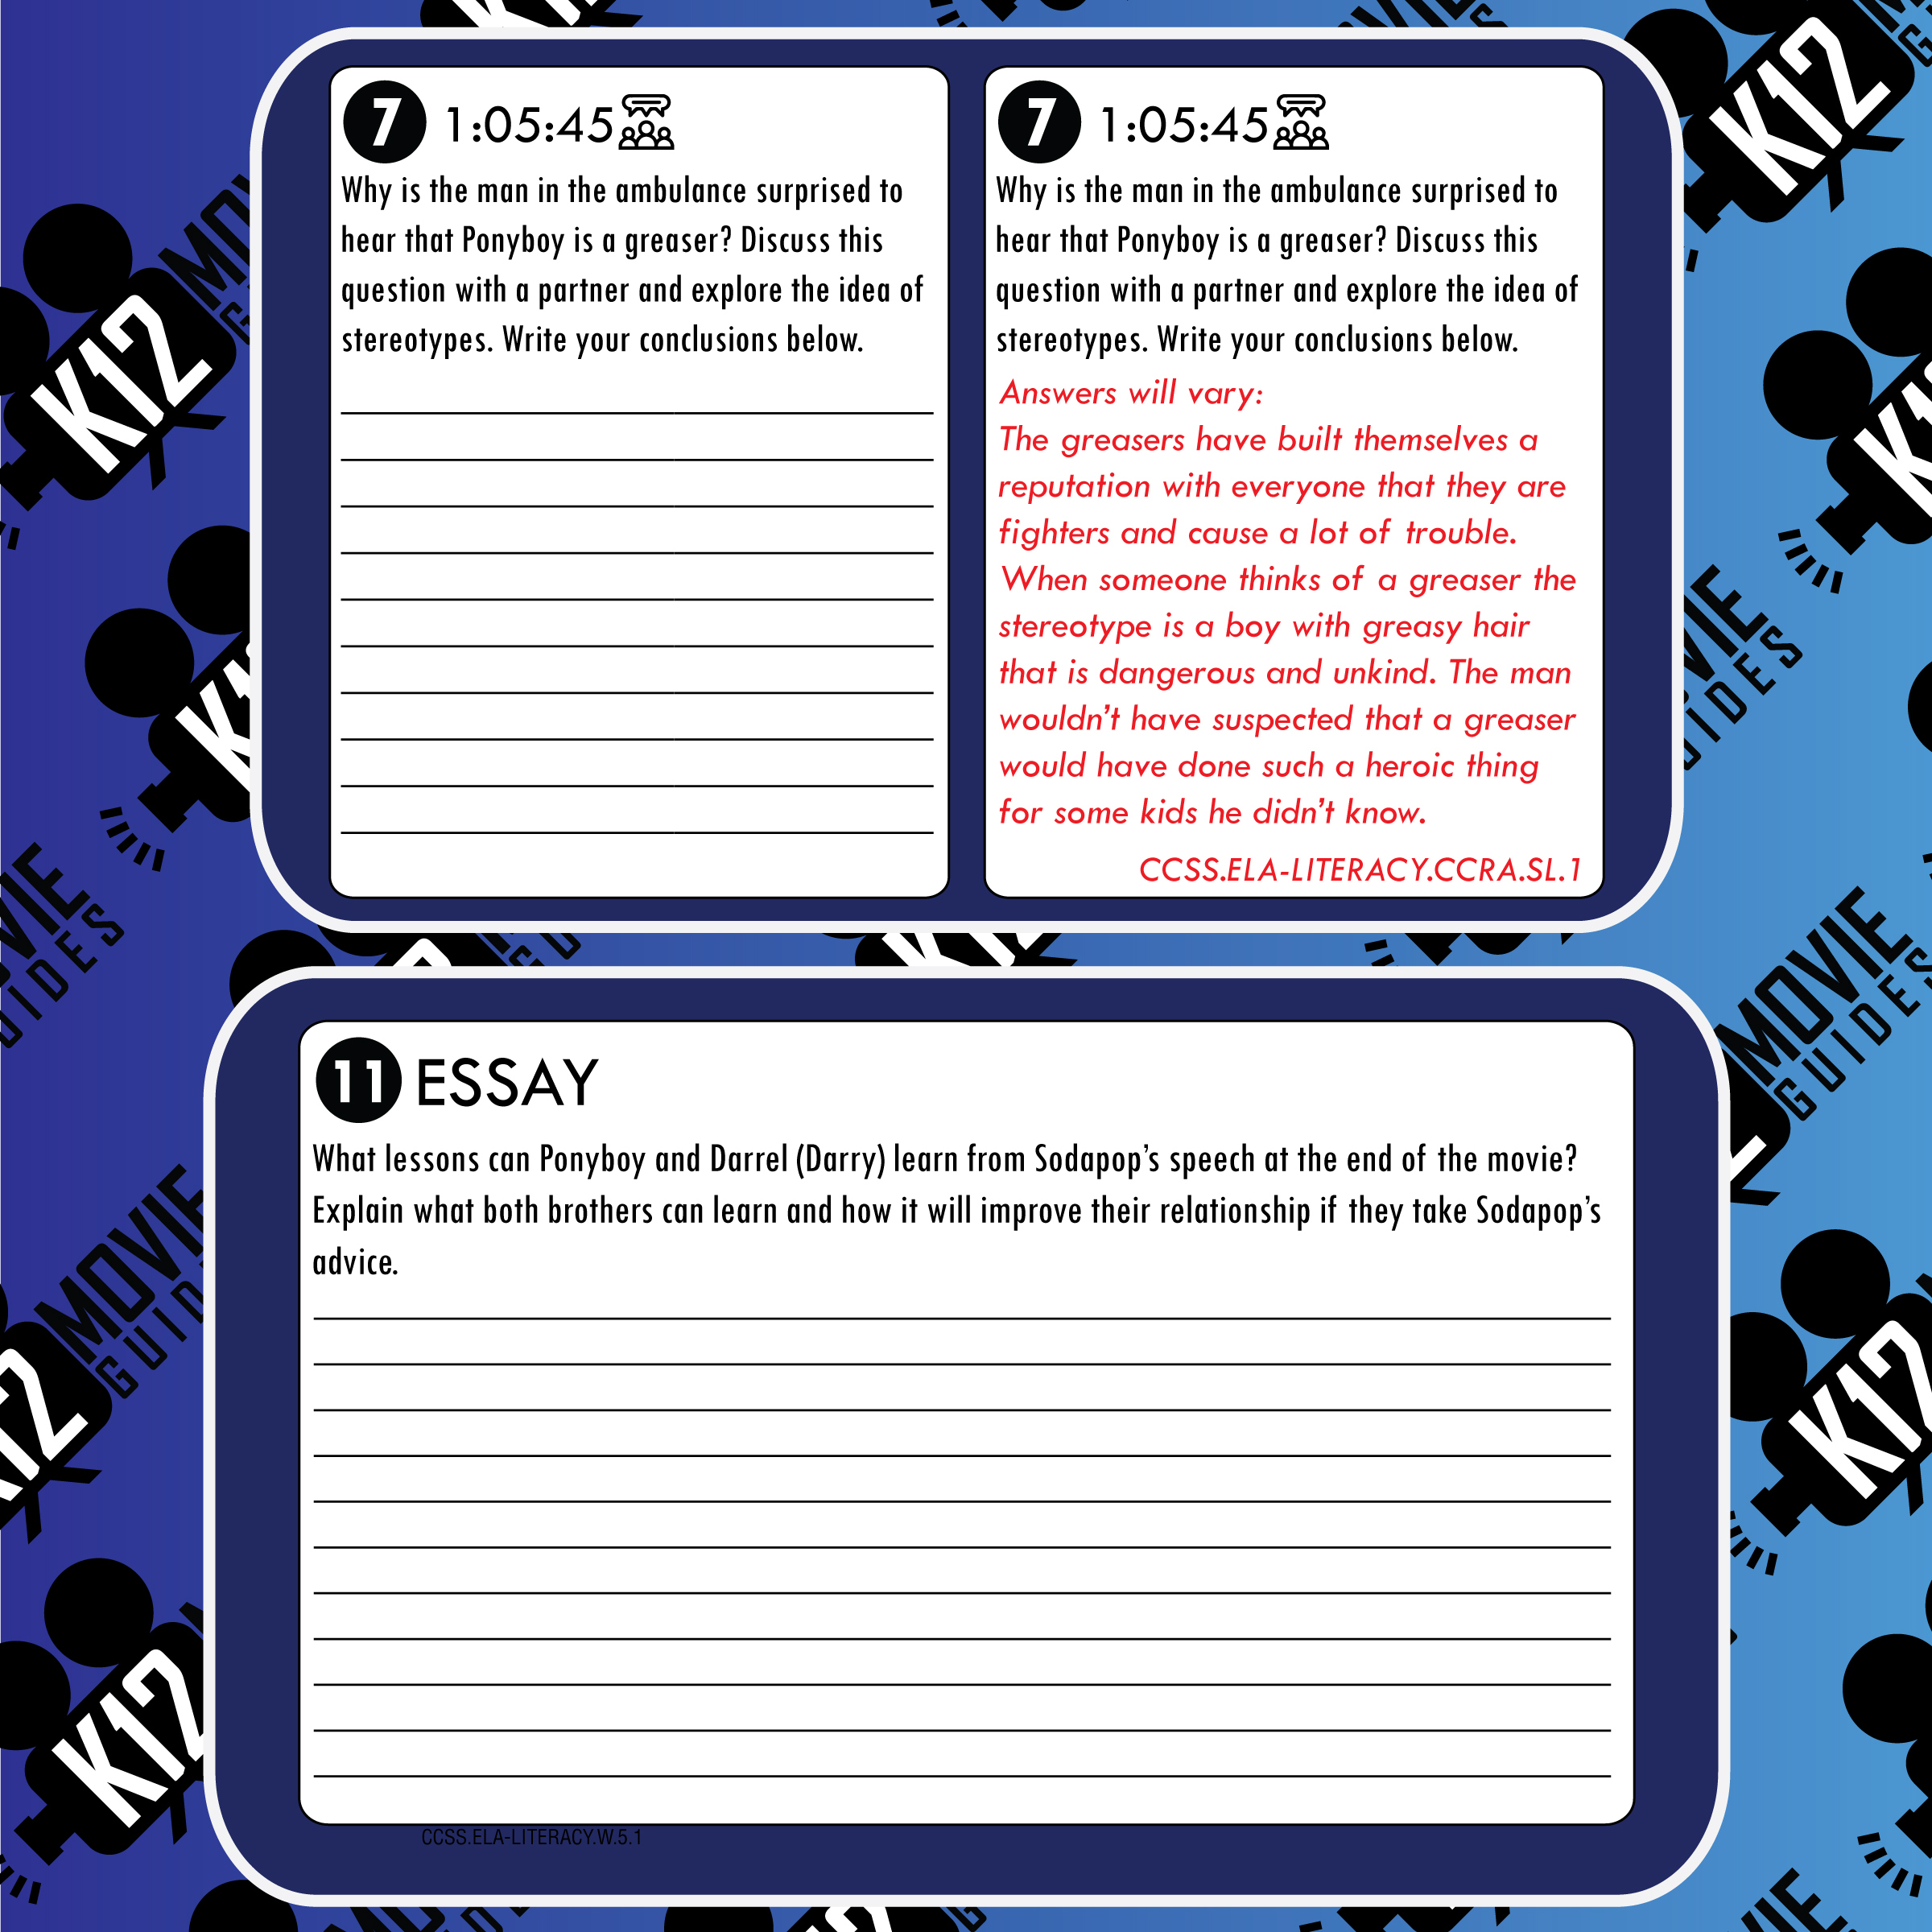 The Outsiders Movie Guide | Questions | Worksheet (PG13 - 1983) Free Sample